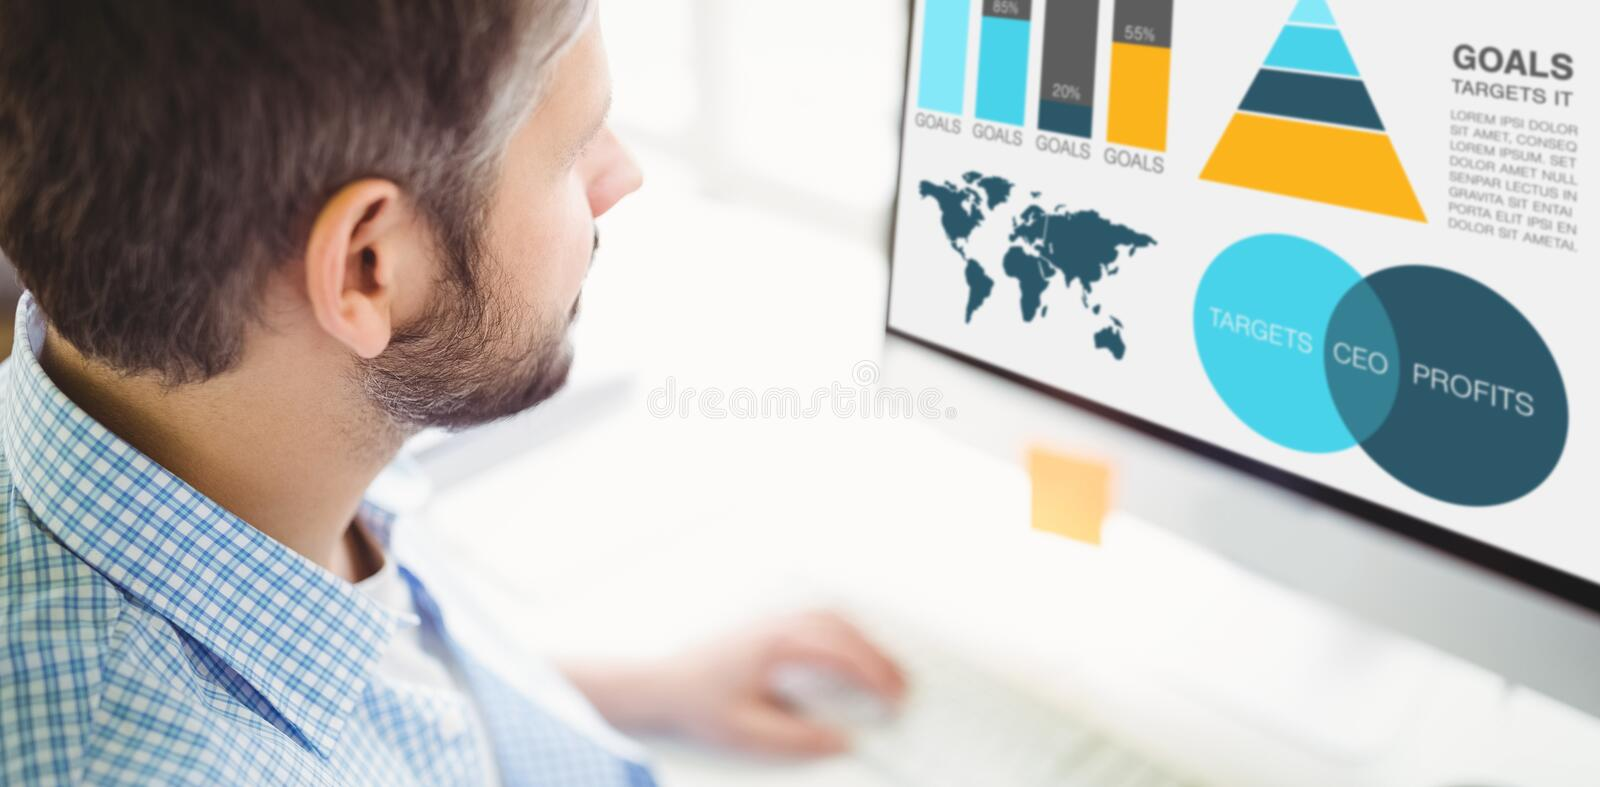 Composite image of graphic image of business presentation with charts and map. Graphic image of business presentation with charts and map against man working on royalty free stock photography